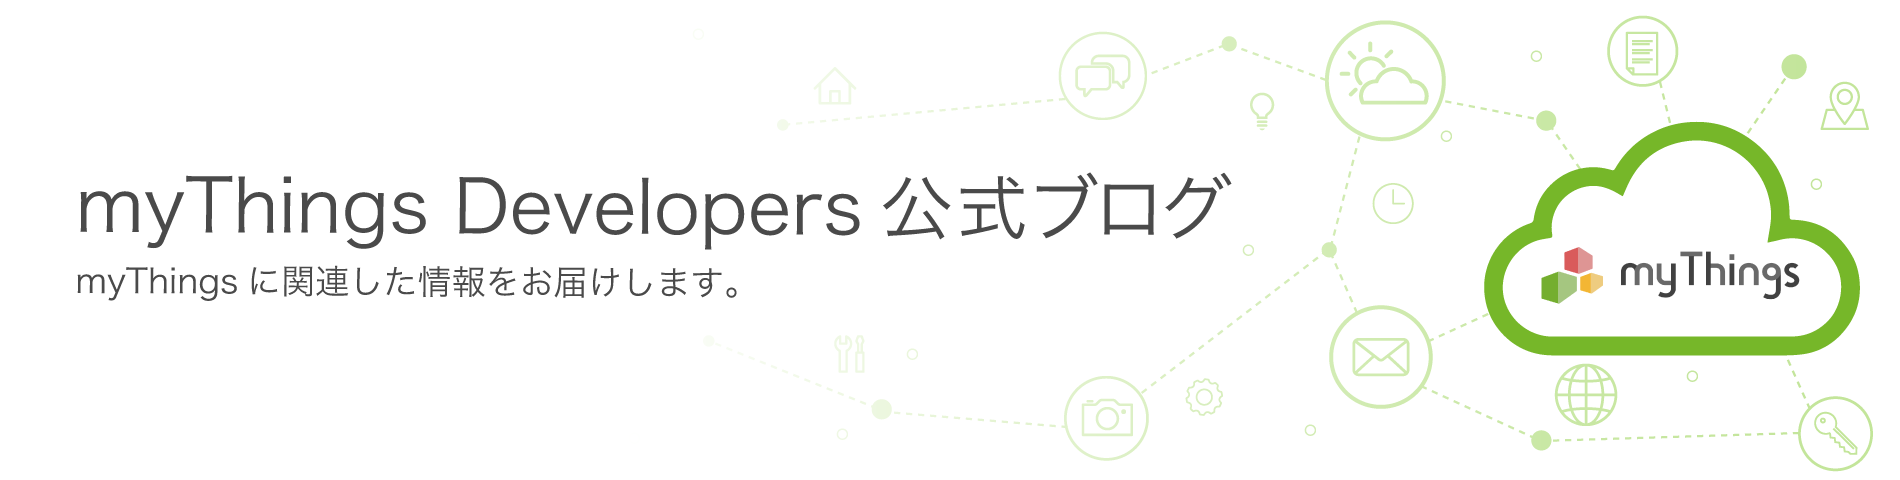 myThings Developers 公式ブログ